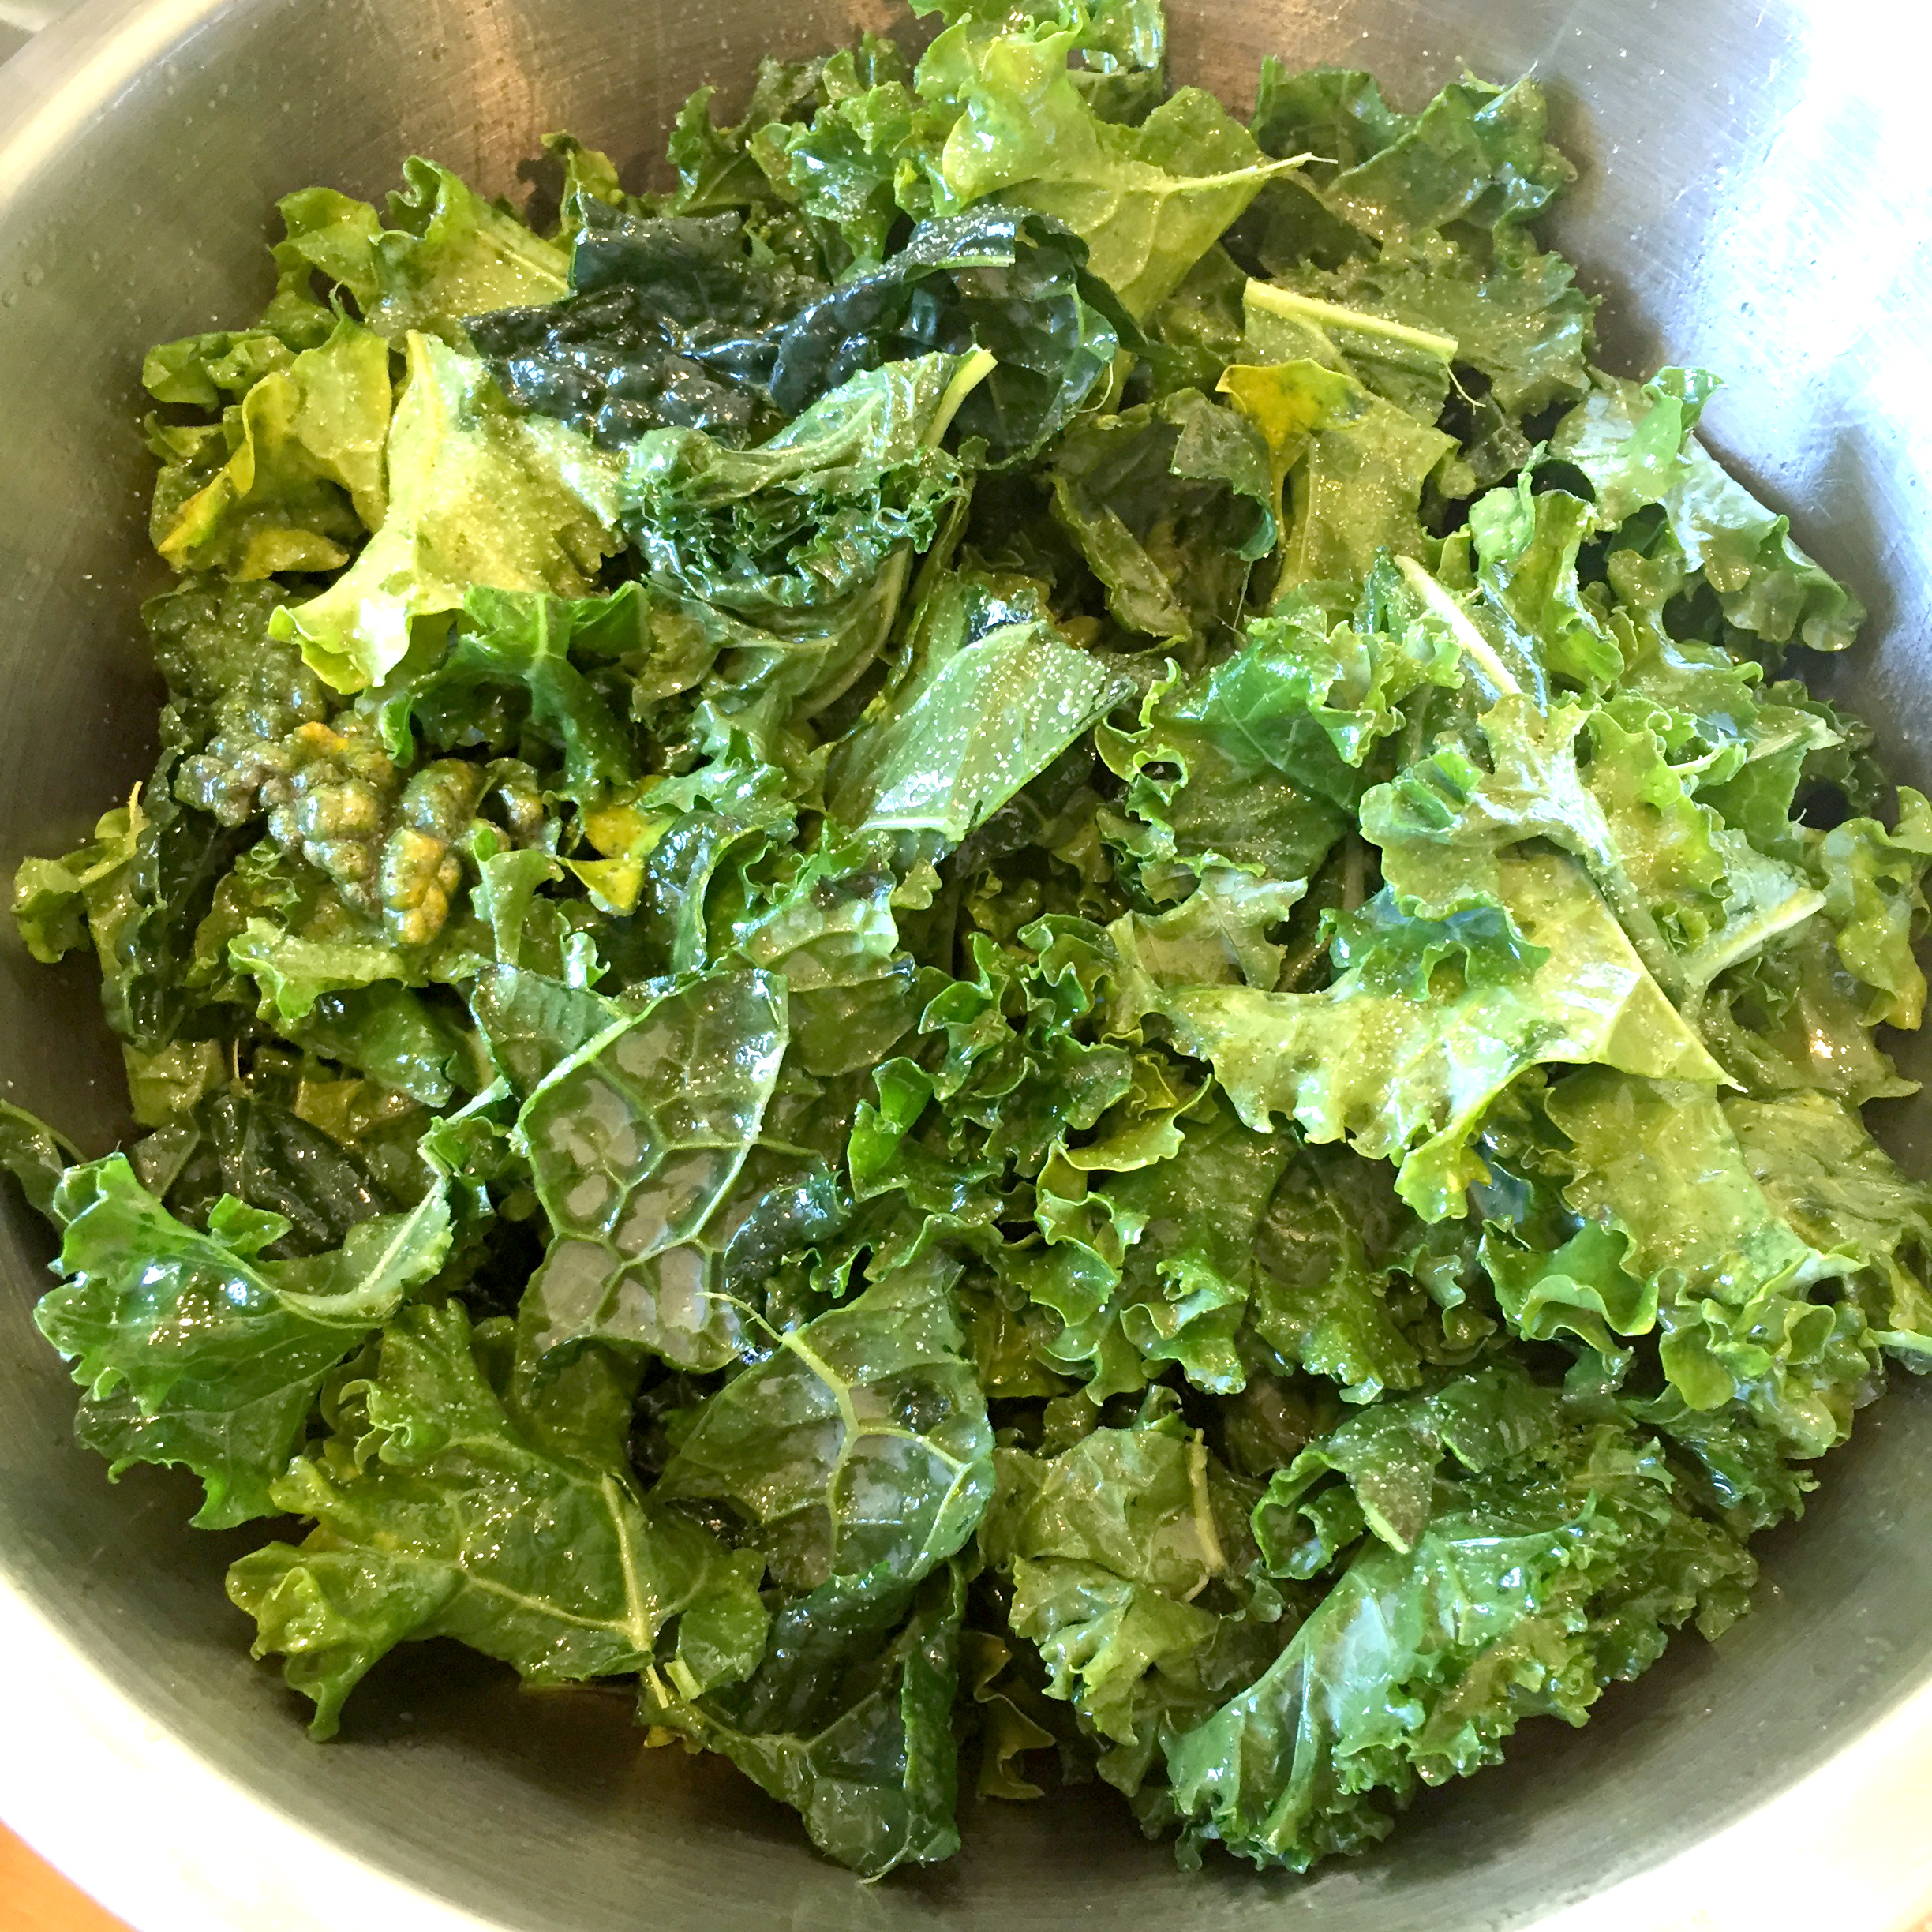 Prepared kale leaves for making kale chips.